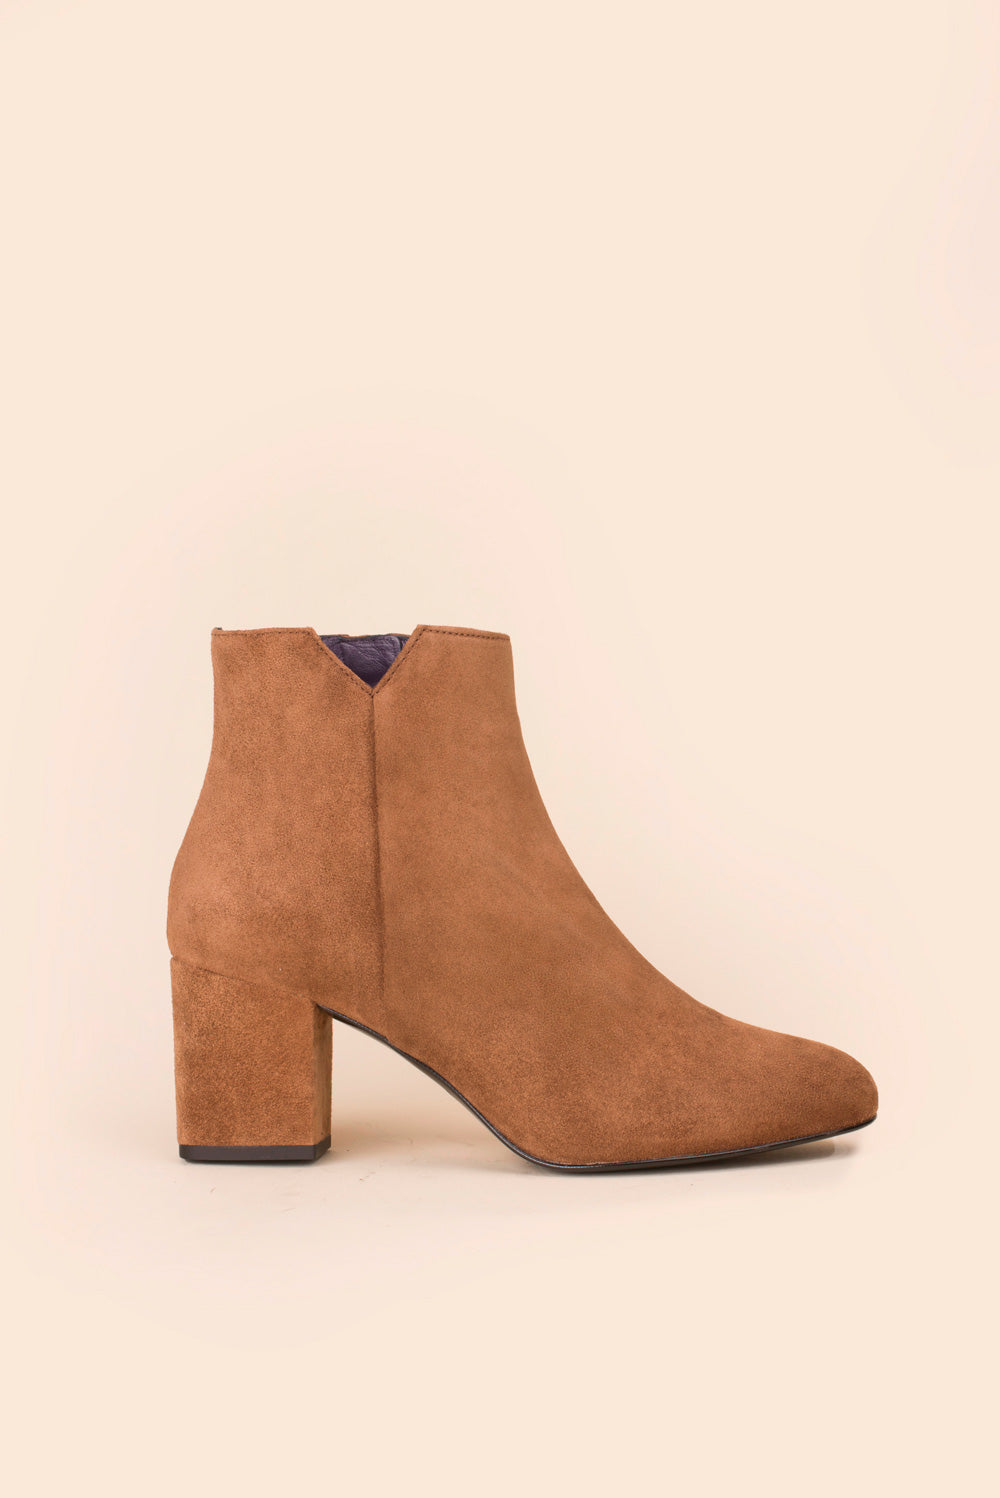 Bottines Virgin veau velours daim rhum Anaki